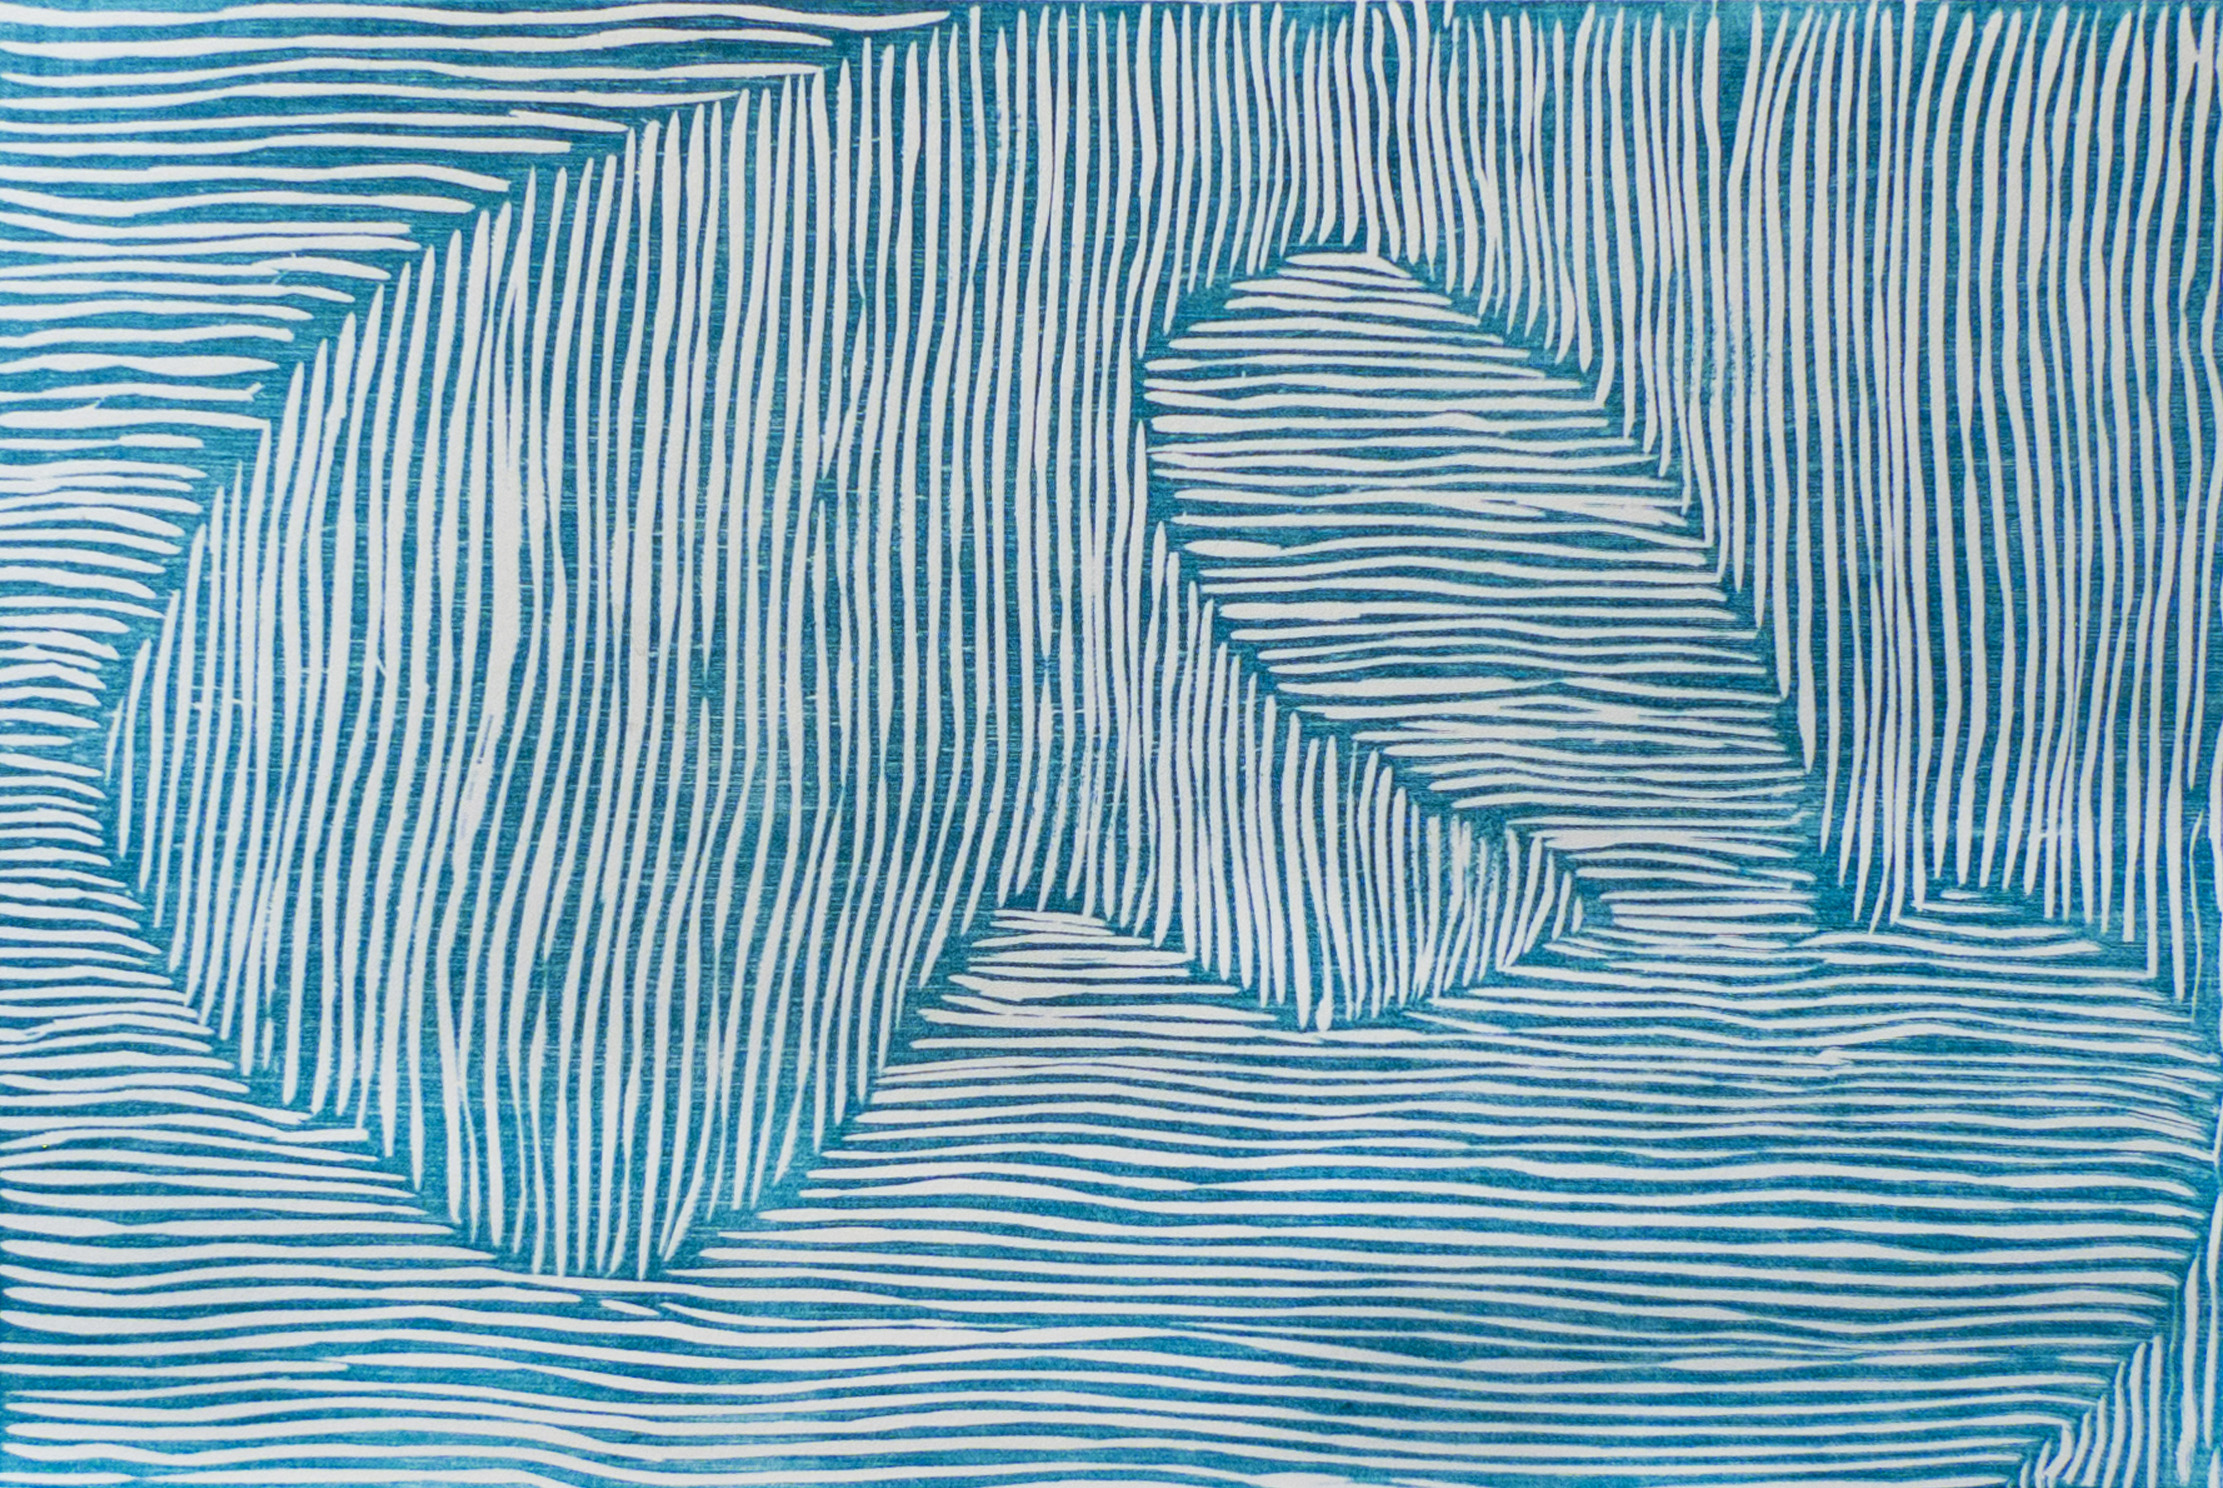 Cathy Robinson, untitled, reduction woodblock on Magnani paper, 2012.